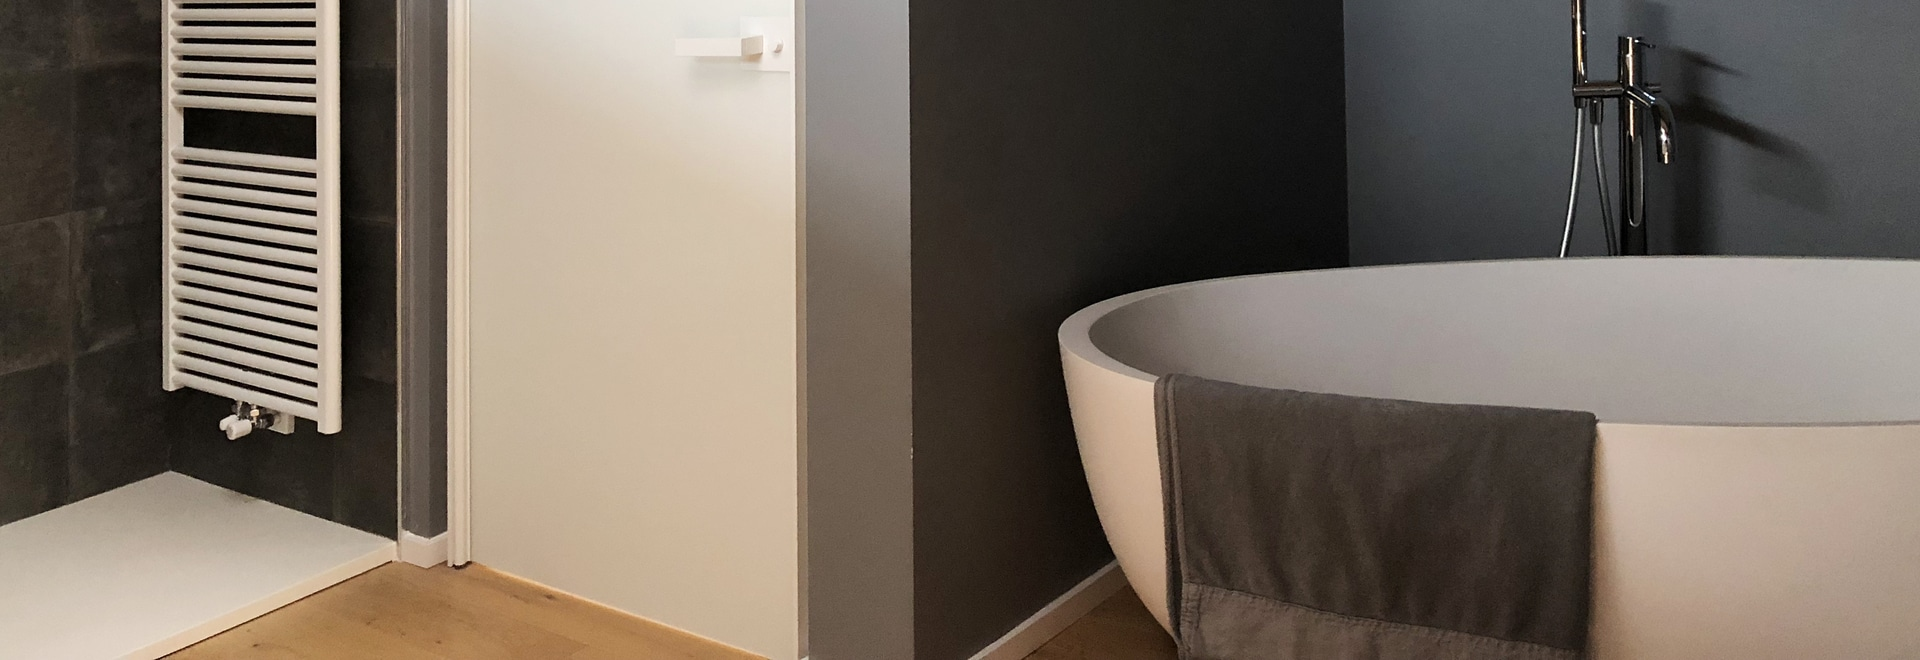 Satin and lacquared finishes for the all glass Vitra doors